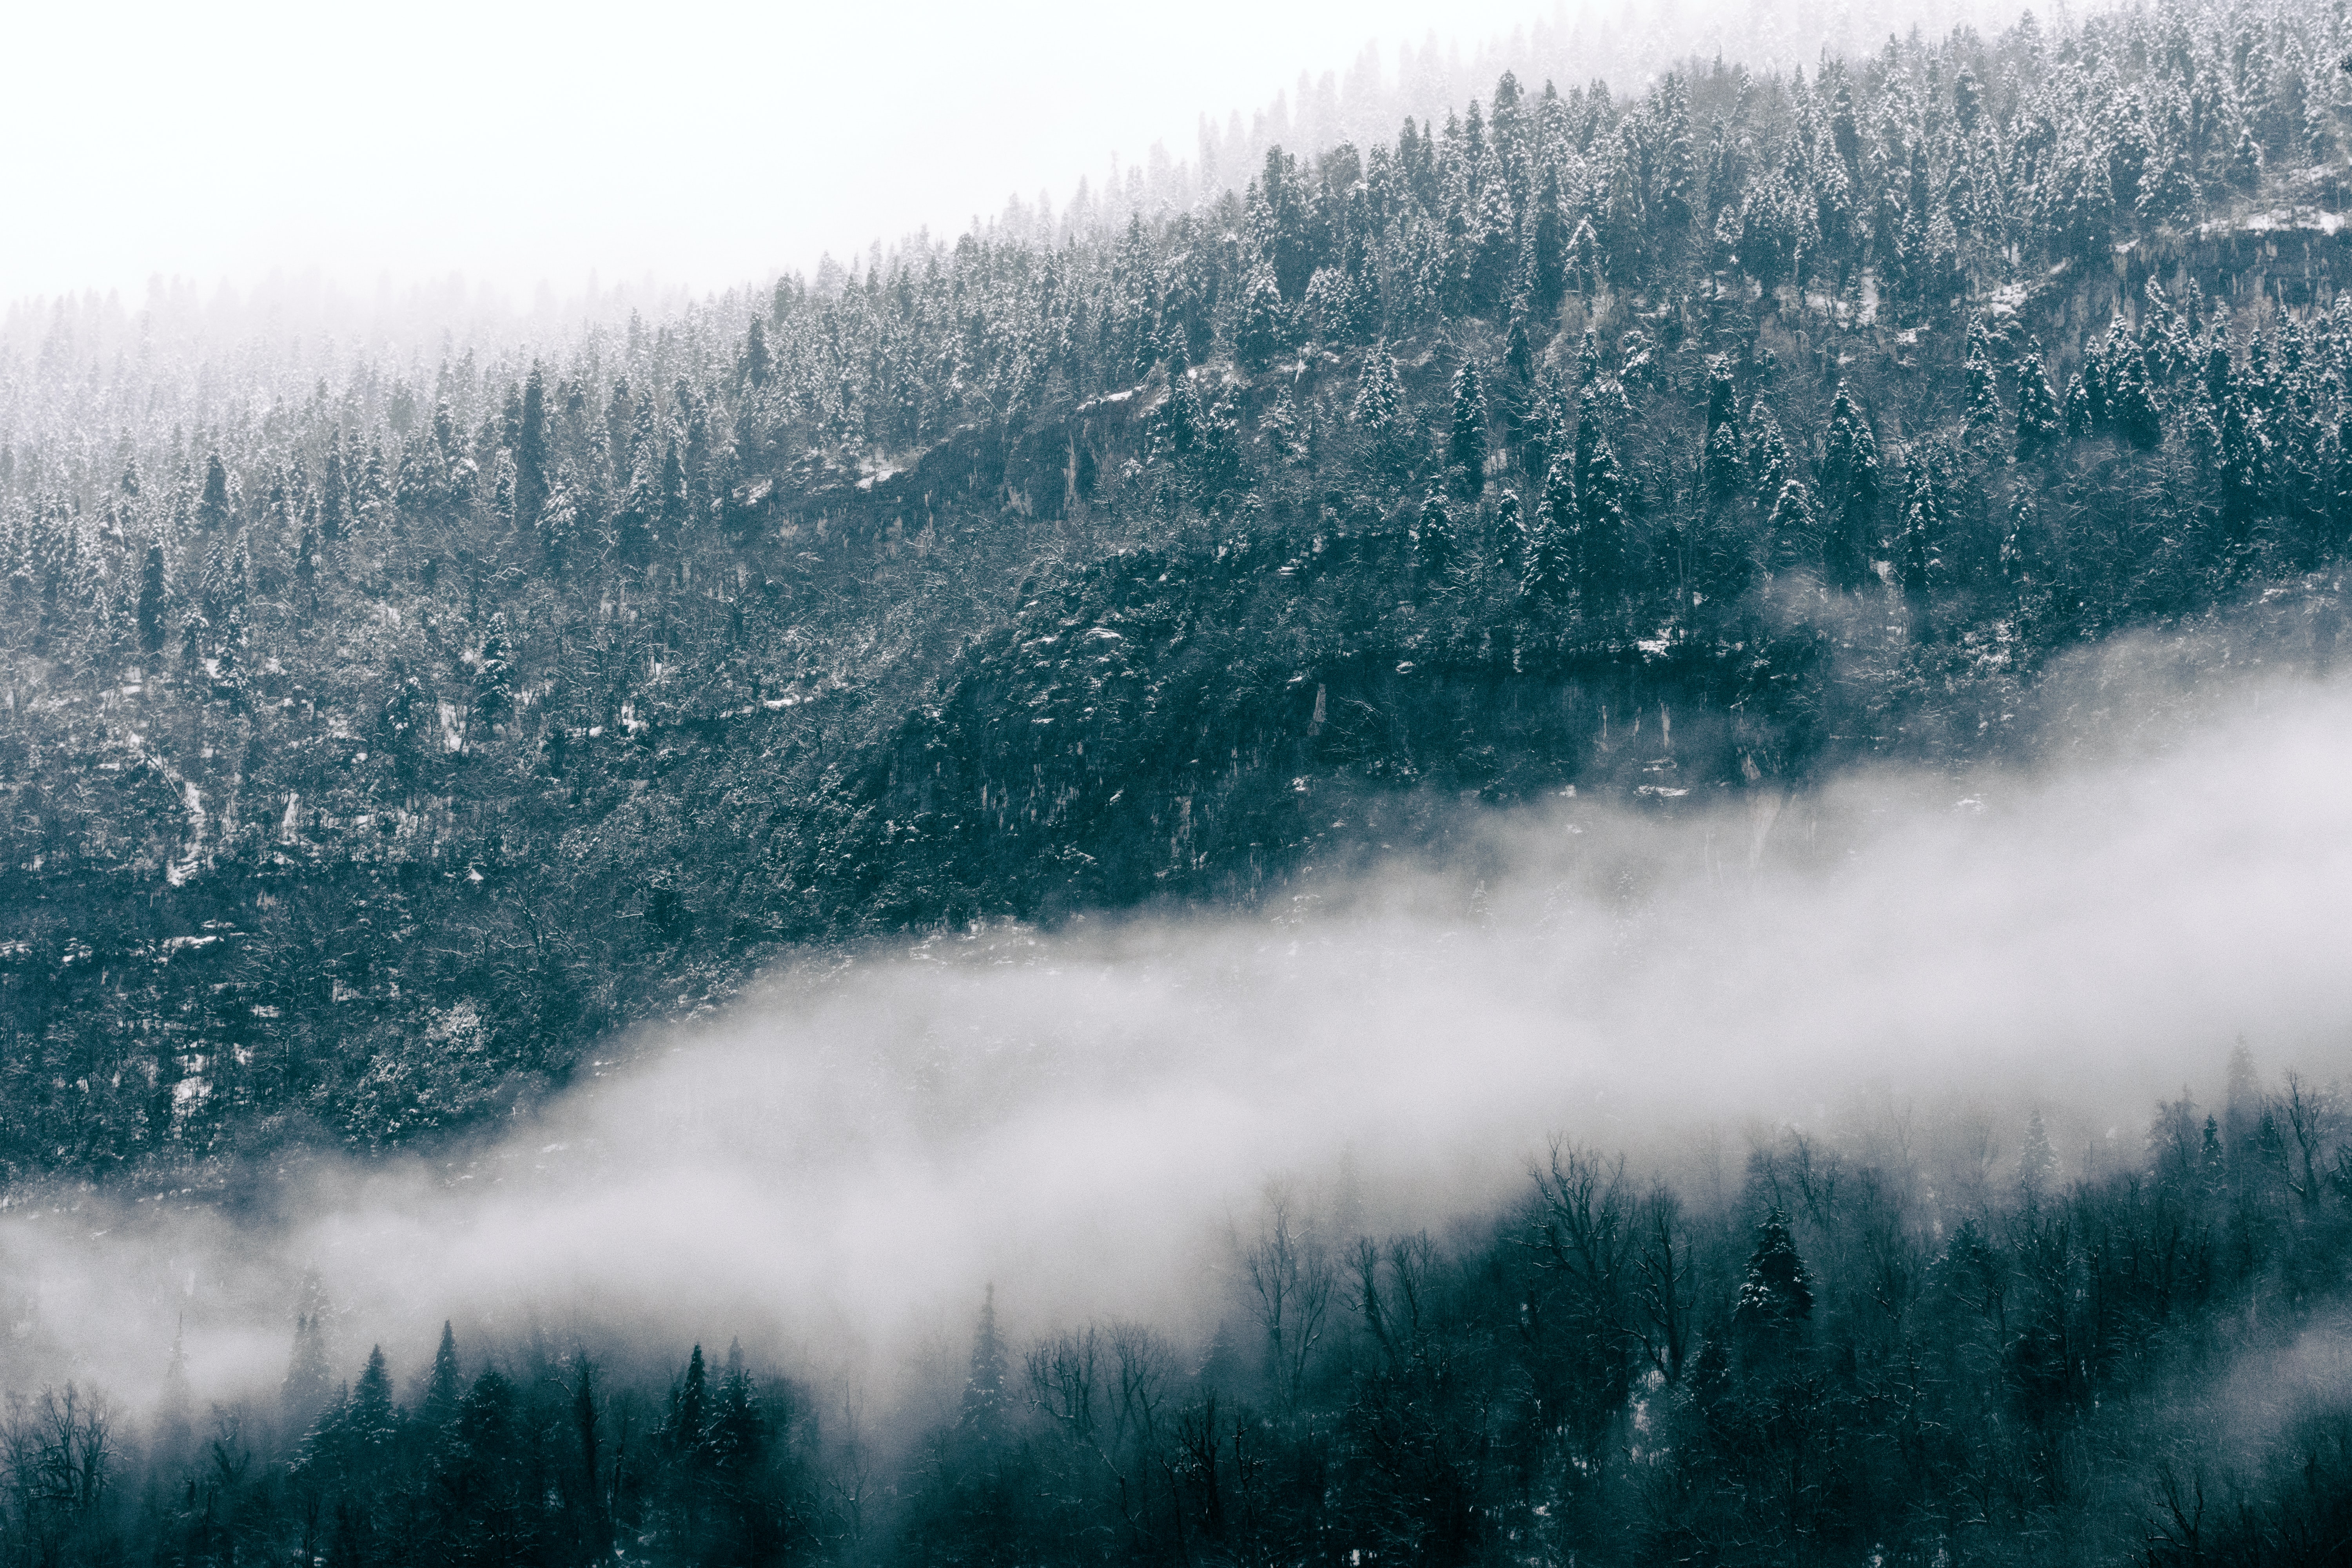 A cloud of fog over a snowy forest in Abkhazia